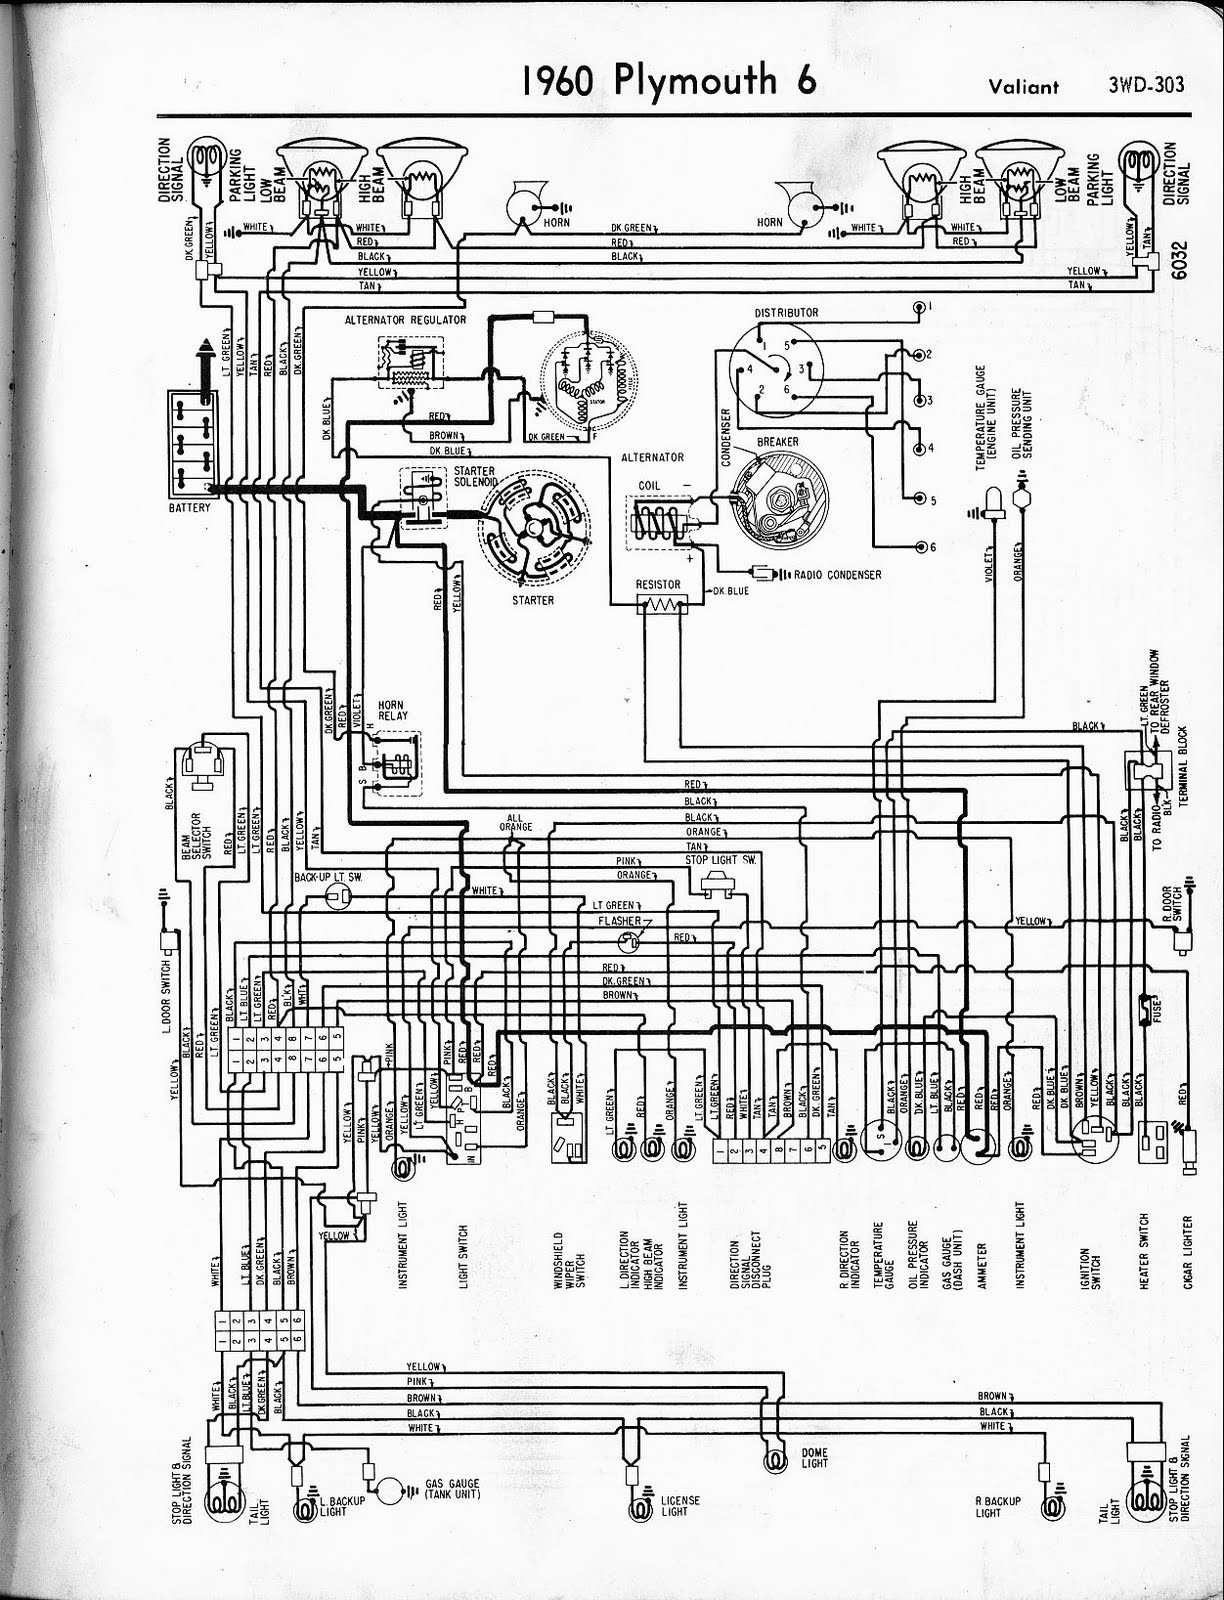 Plymouth Lights Wiring Diagram : Free auto wiring diagram plymouth valiant